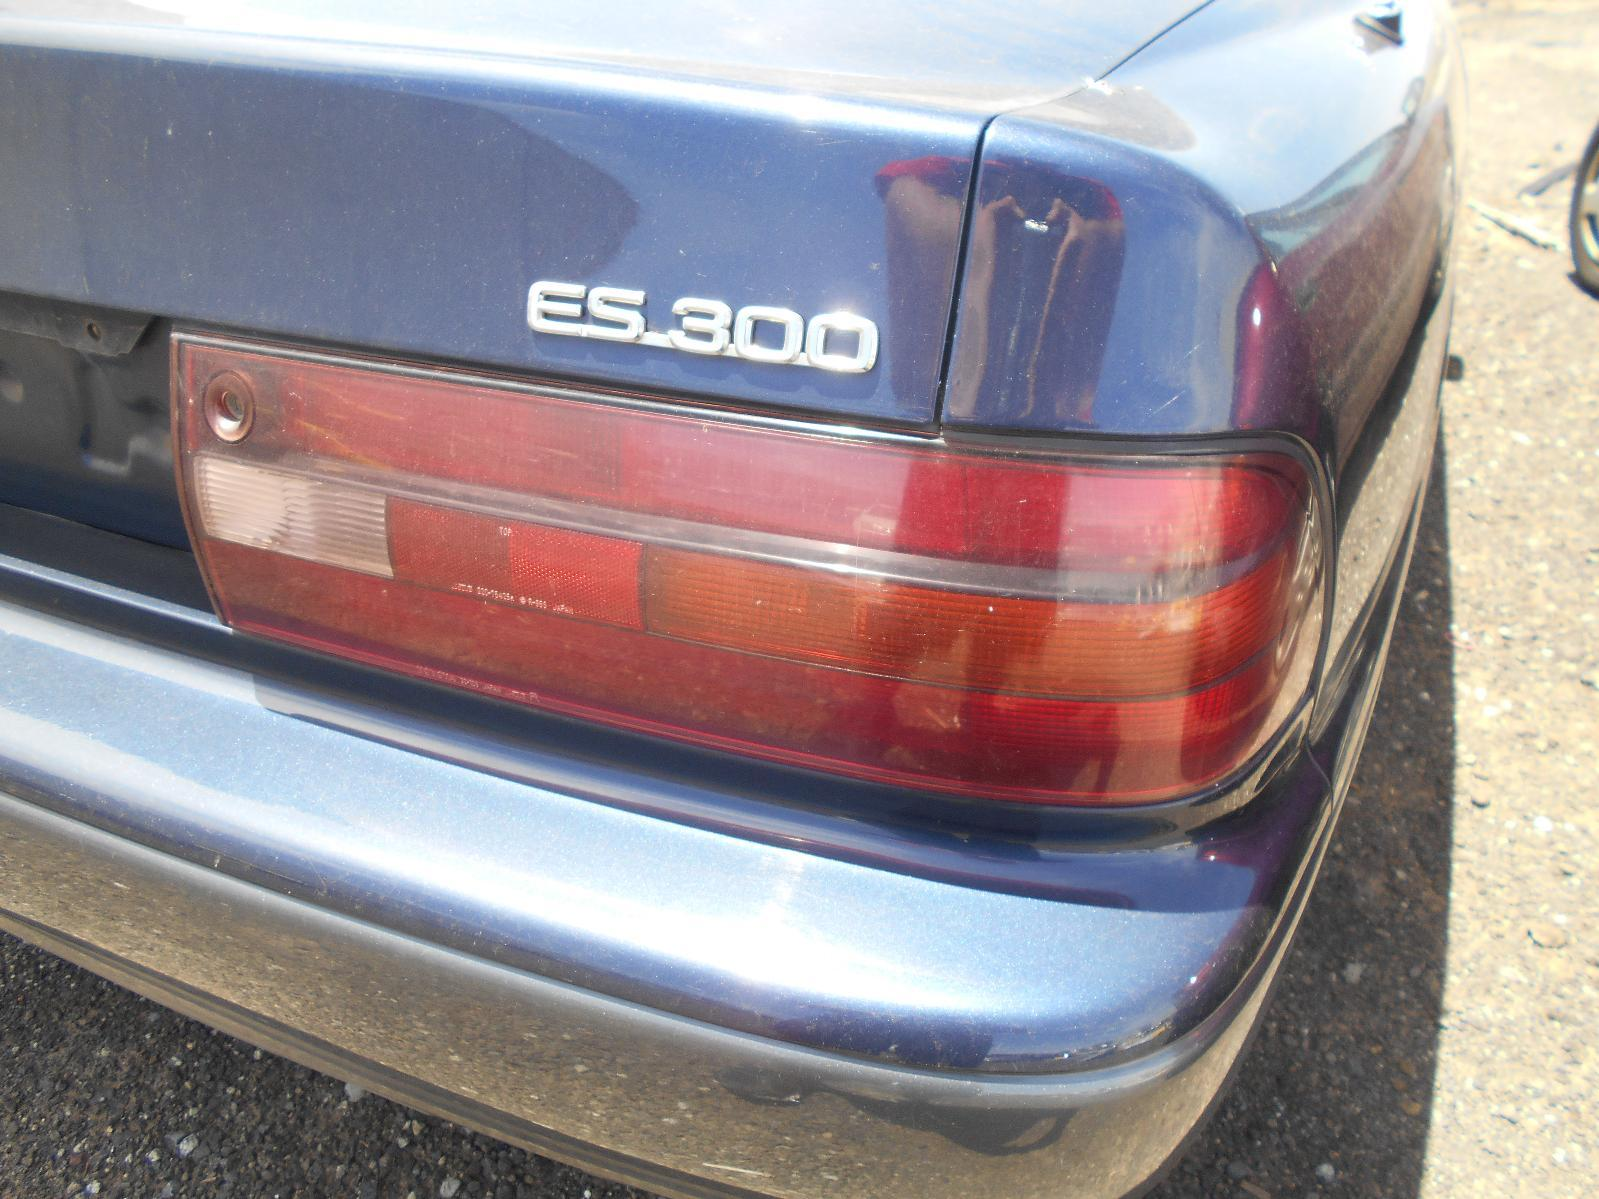 LEXUS ES300 (92-05), Right Taillight, VCV10, ORANGE FLASHER, KOITO, LENS# 32-128, 06/92-09/94